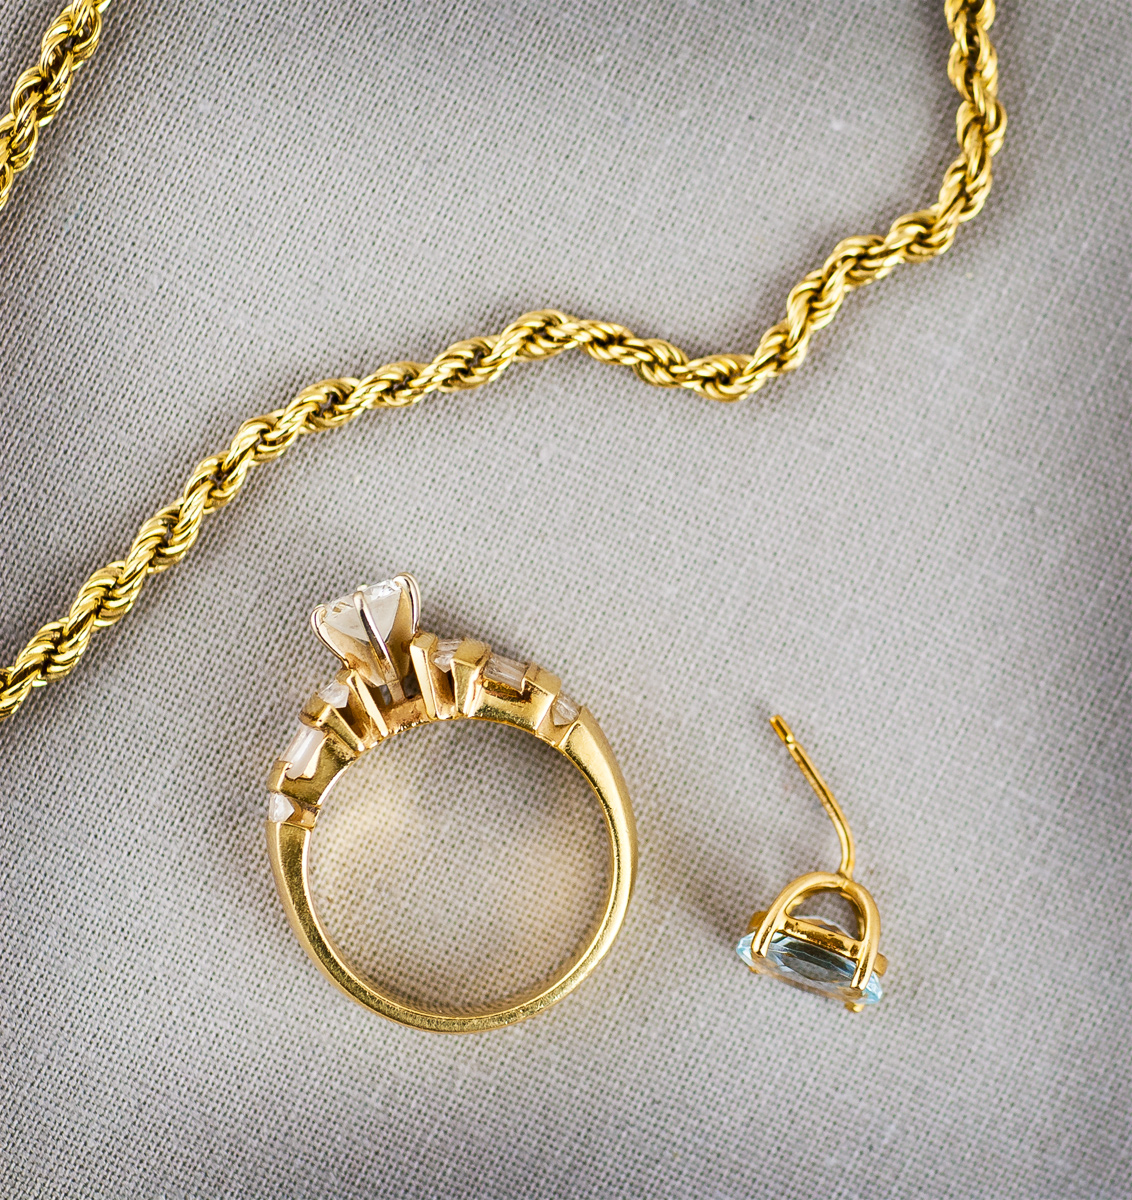 Intrinsic Jewelry Value Of Rings Chains And Earrings